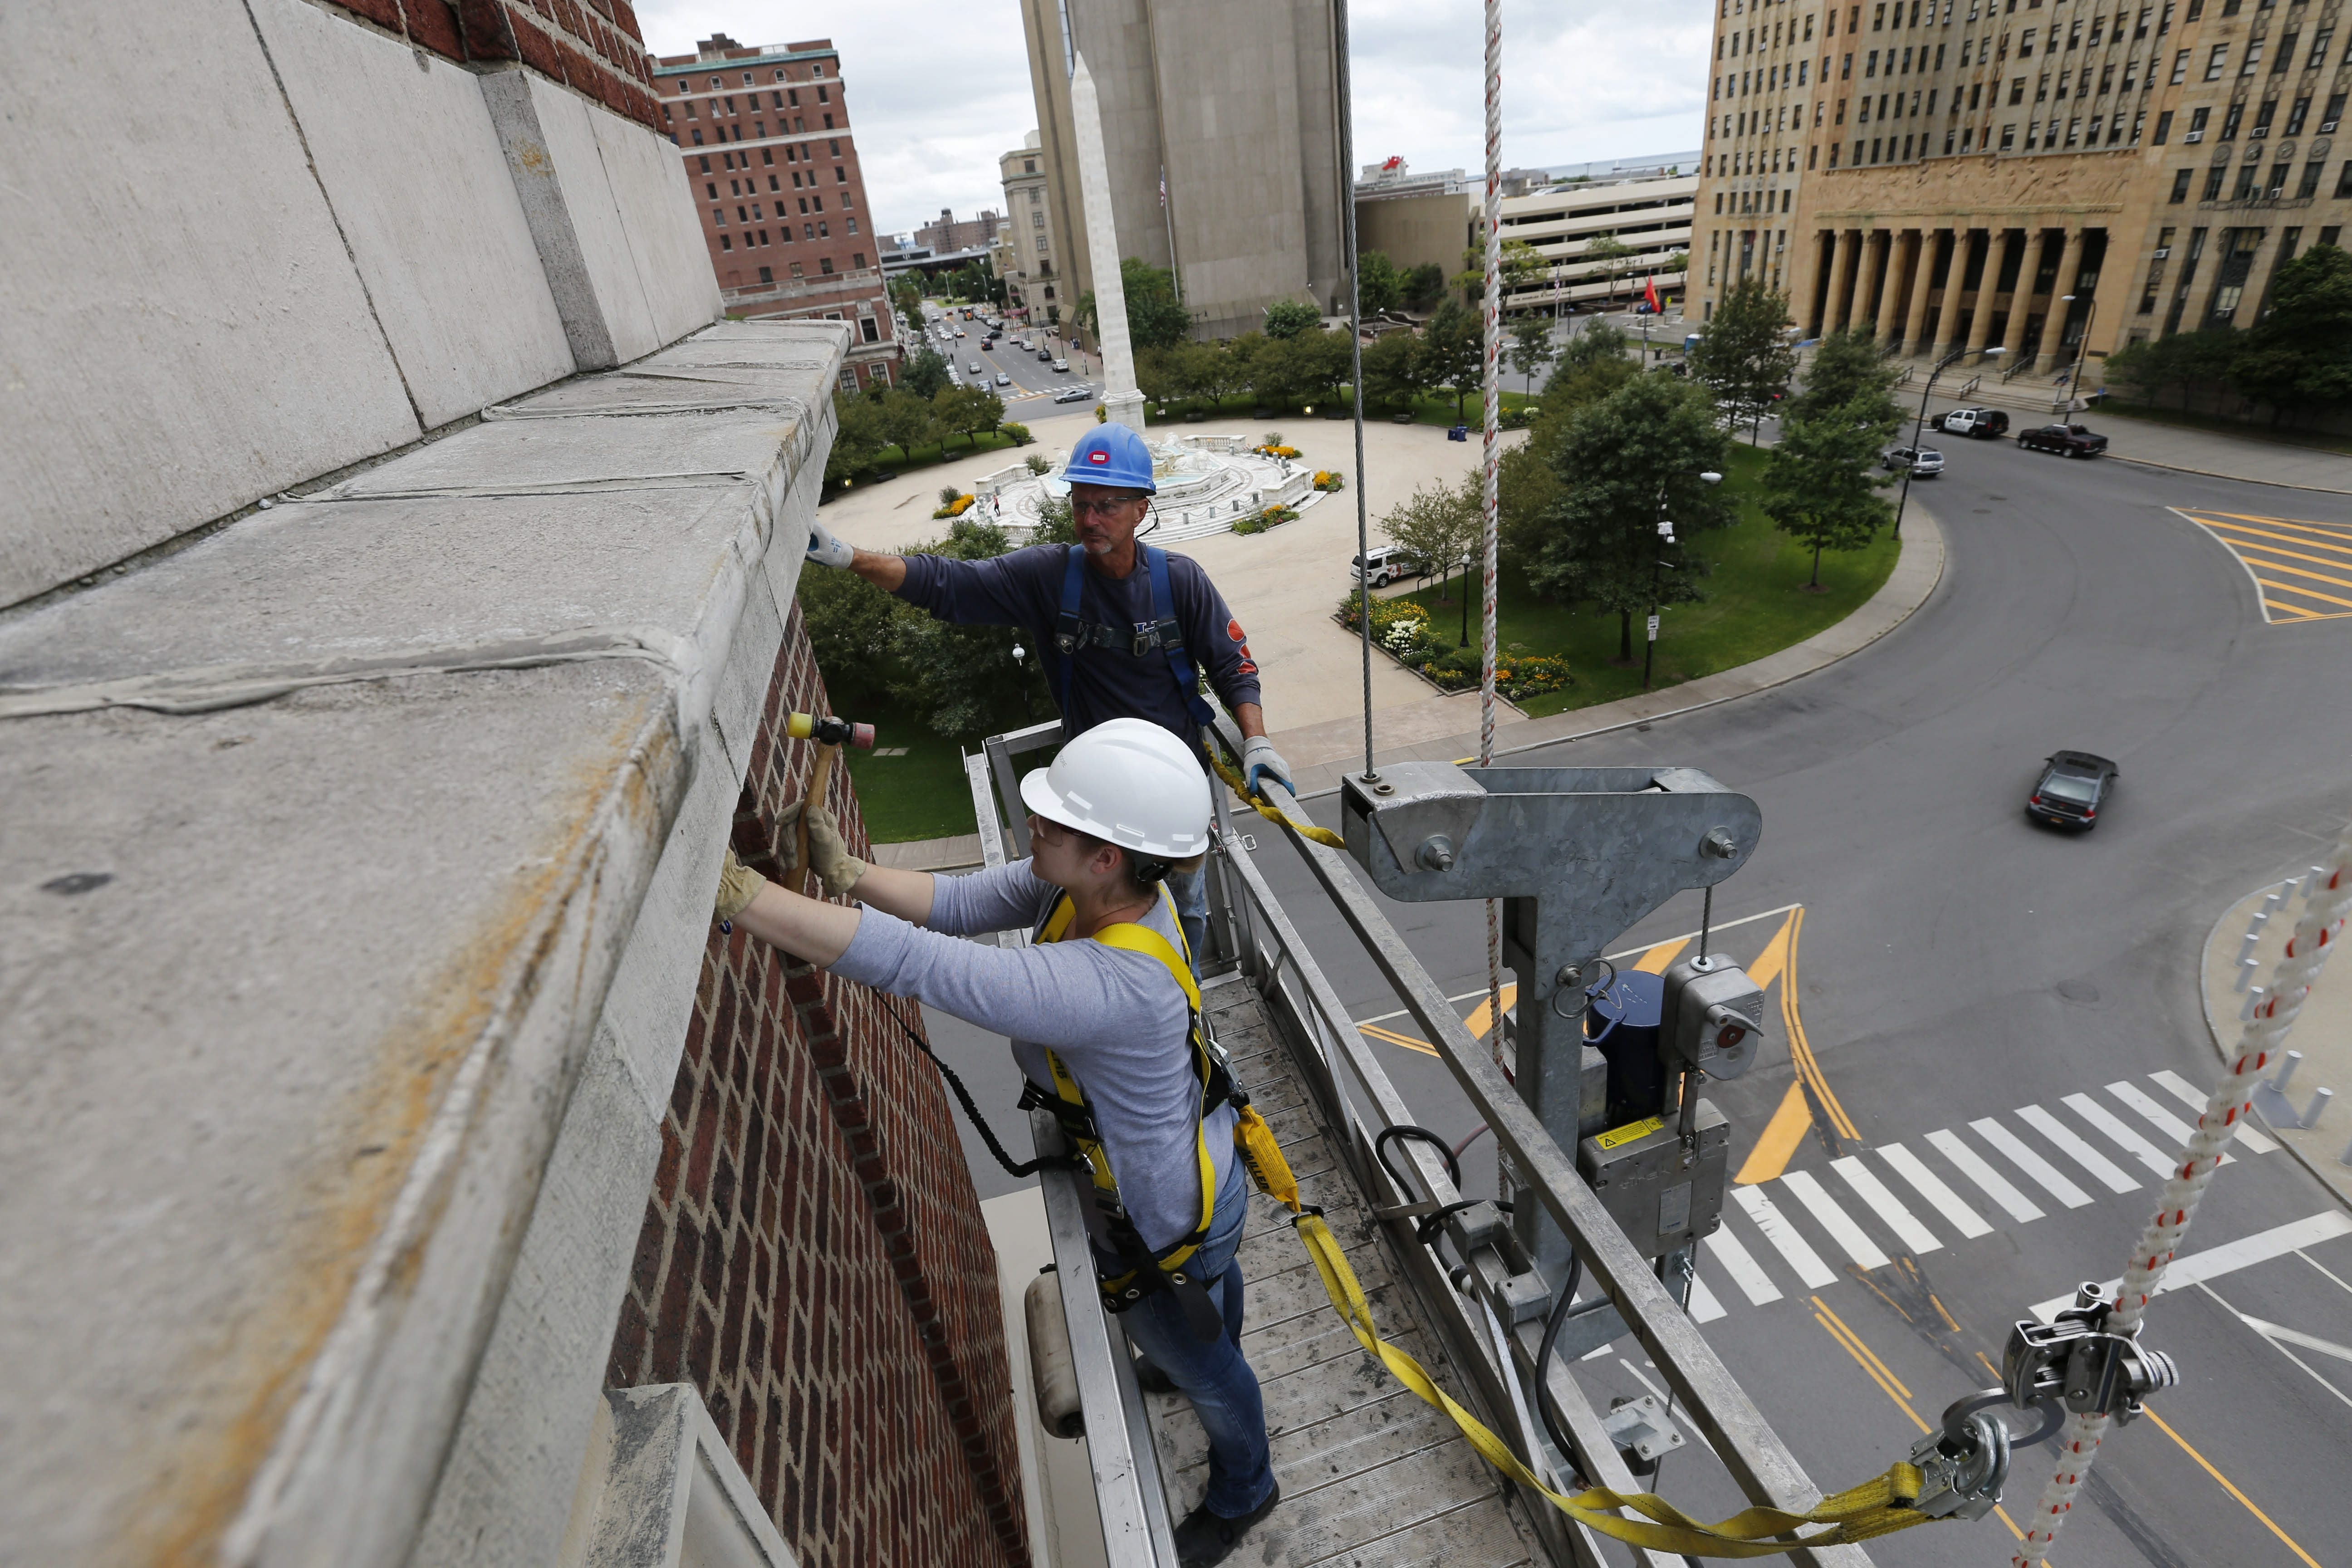 """Conservator Lurita Blank of WBM Engineering uses a process called """"sounding"""" to inspect the condition of the terra-cotta elements on the facade of Statler City on Tuesday while Gary Koz of Morris Masonry watches. The work is part of a $5.3 million exterior renovation."""